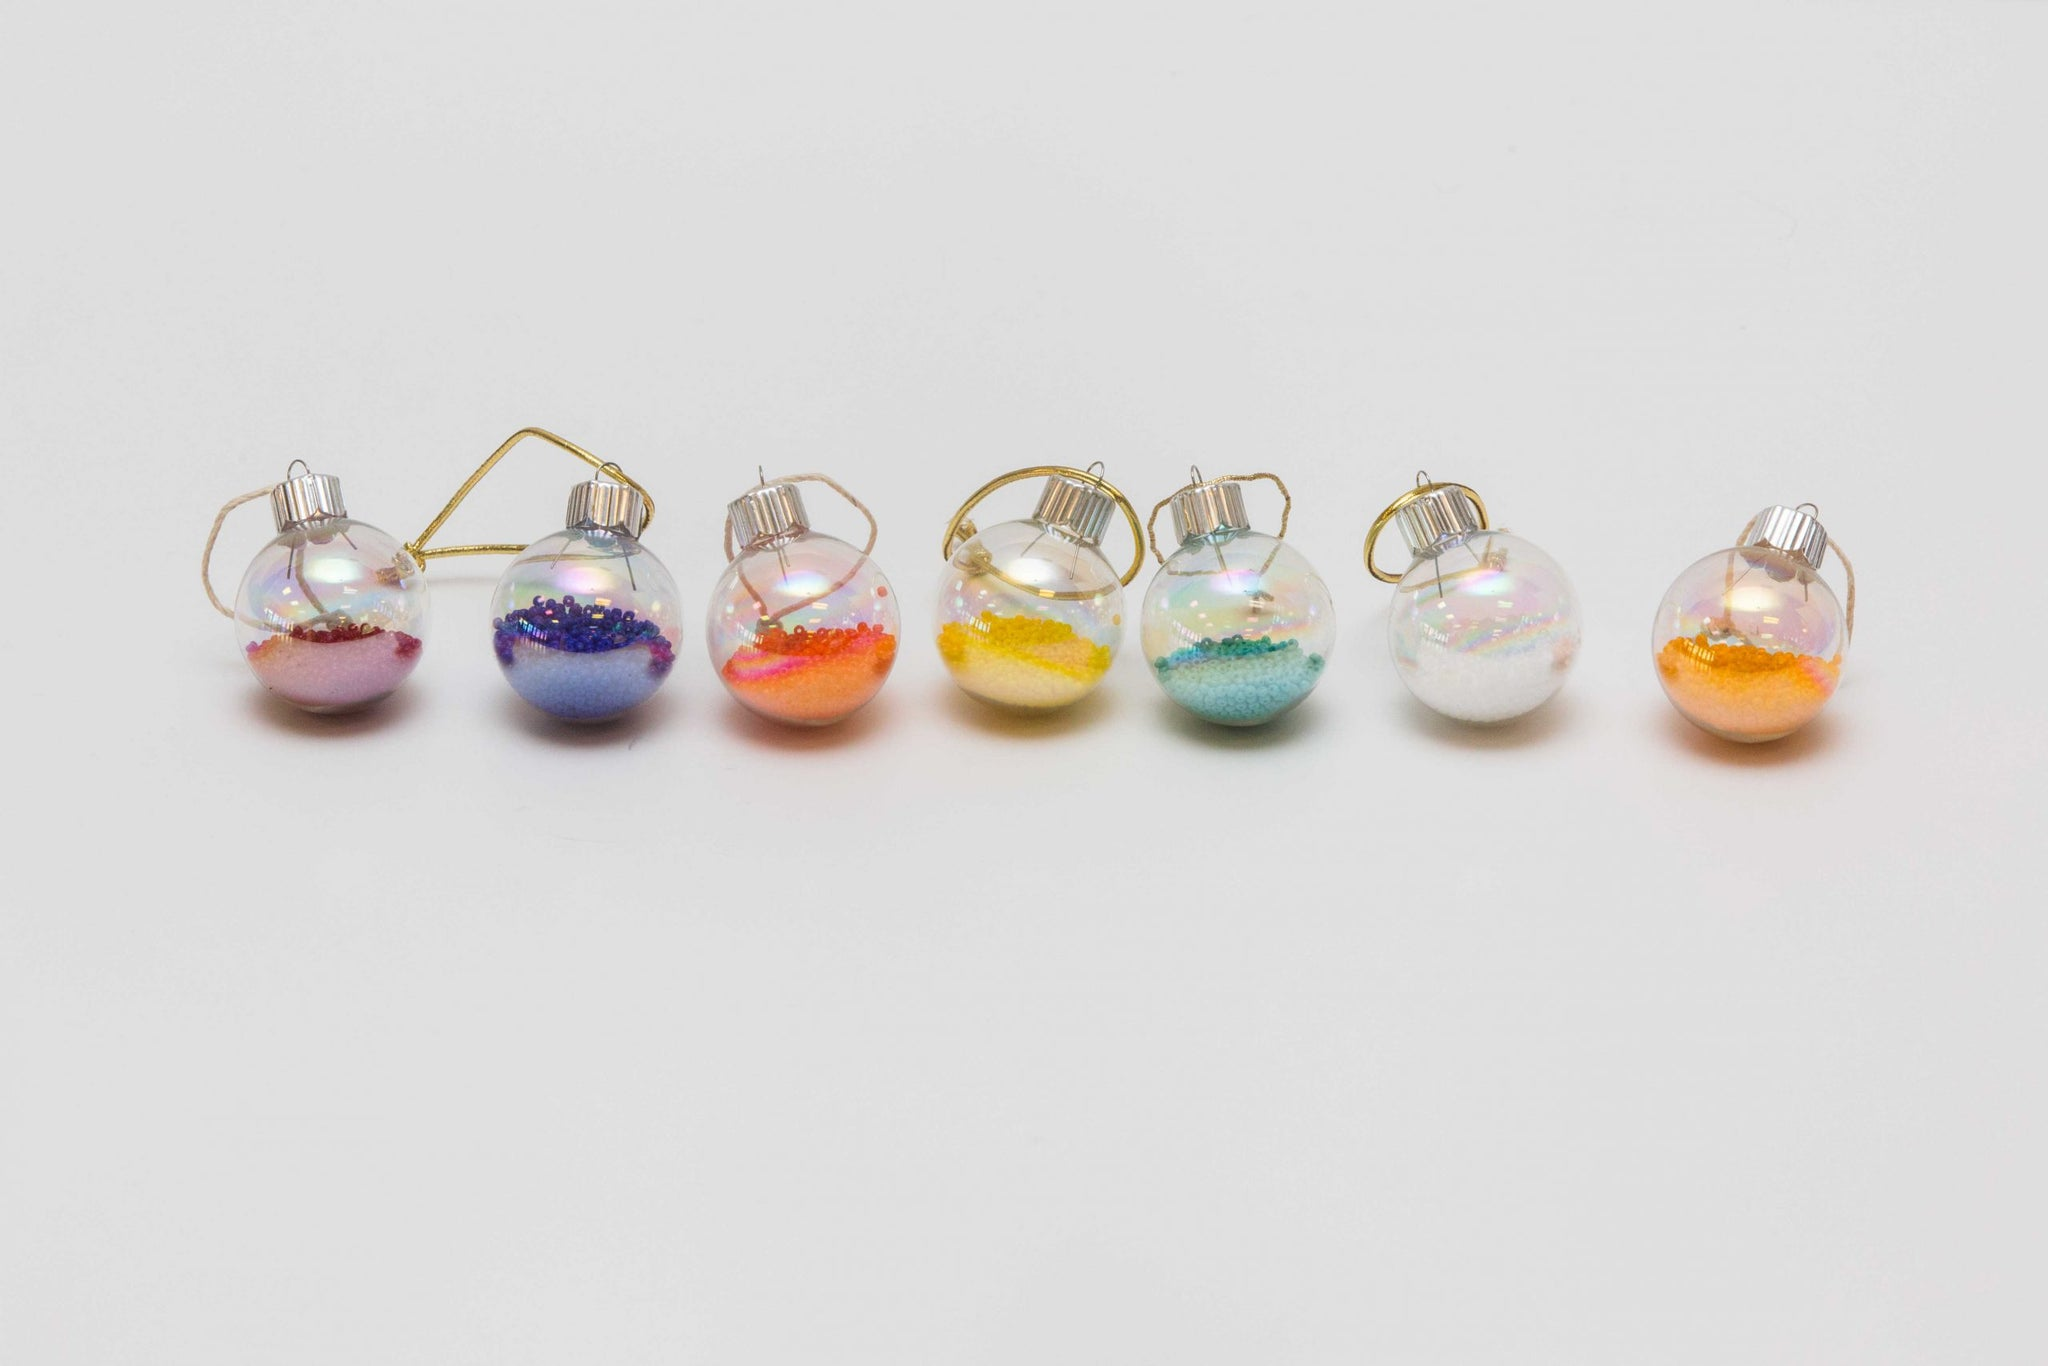 Iridescent Glass Ornaments with Seed Beads